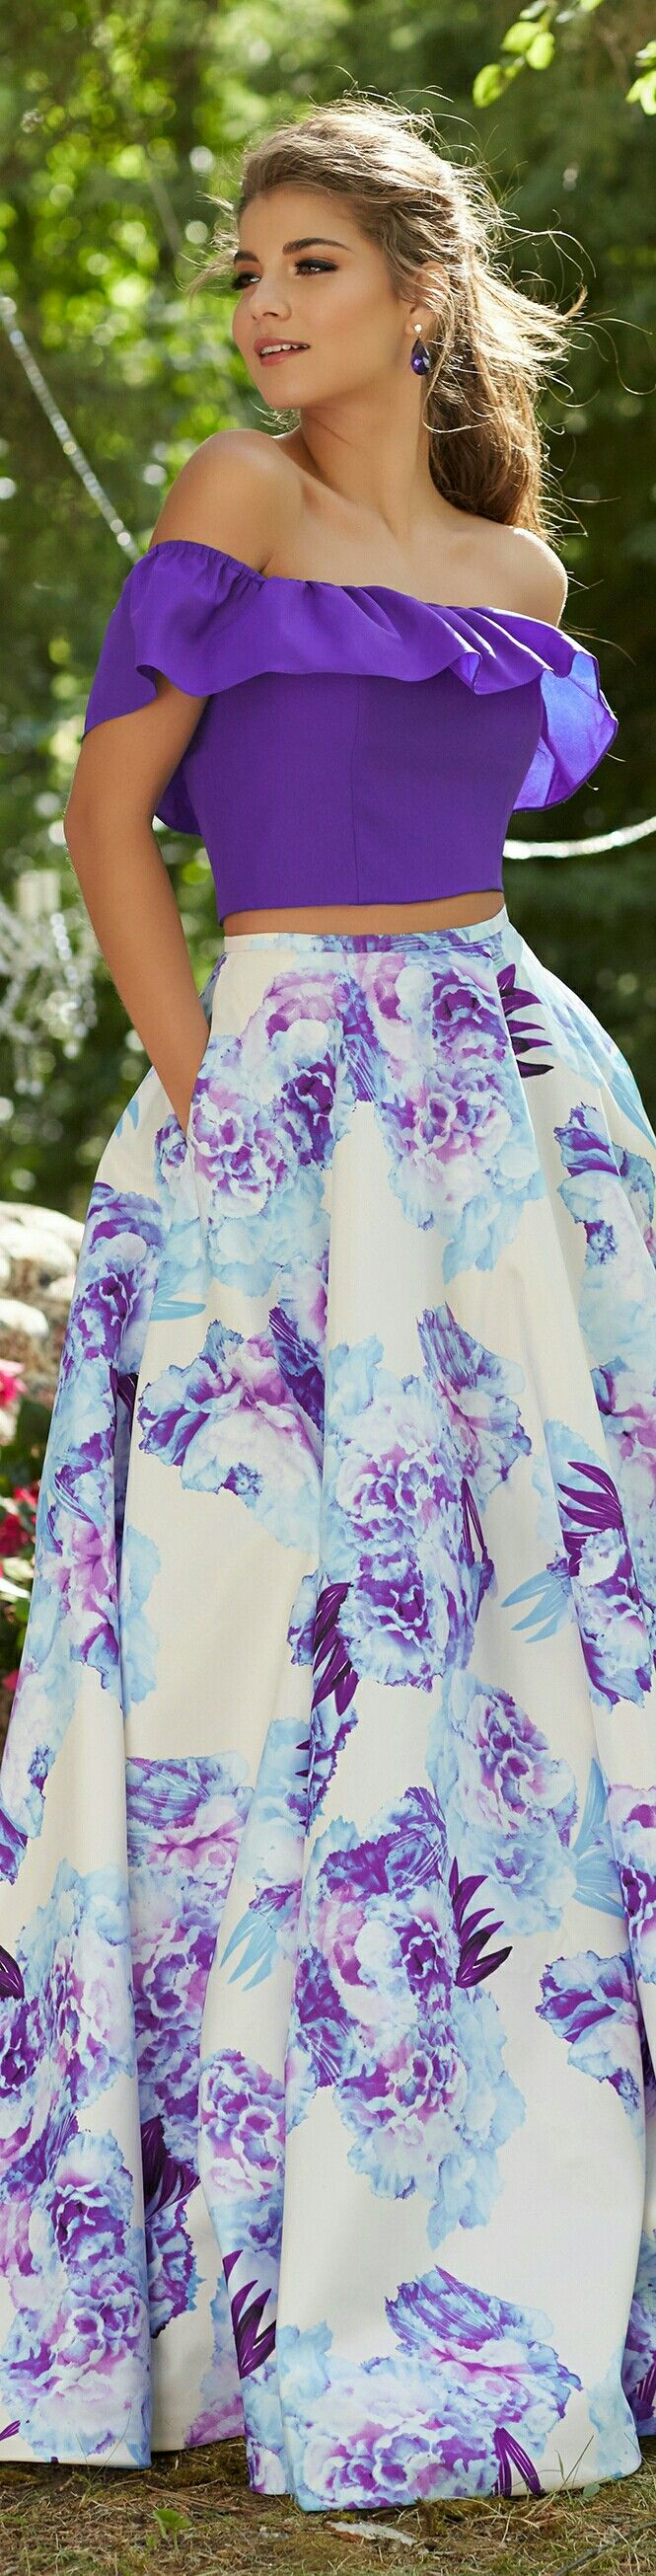 MORI LEE for MGNY | In White w. Purple & Baby Blue Flowers on Taffeta Flowing Skirt and Purple Ruffled Off-Shoulders Halter Top, 2-Piece | #99045.